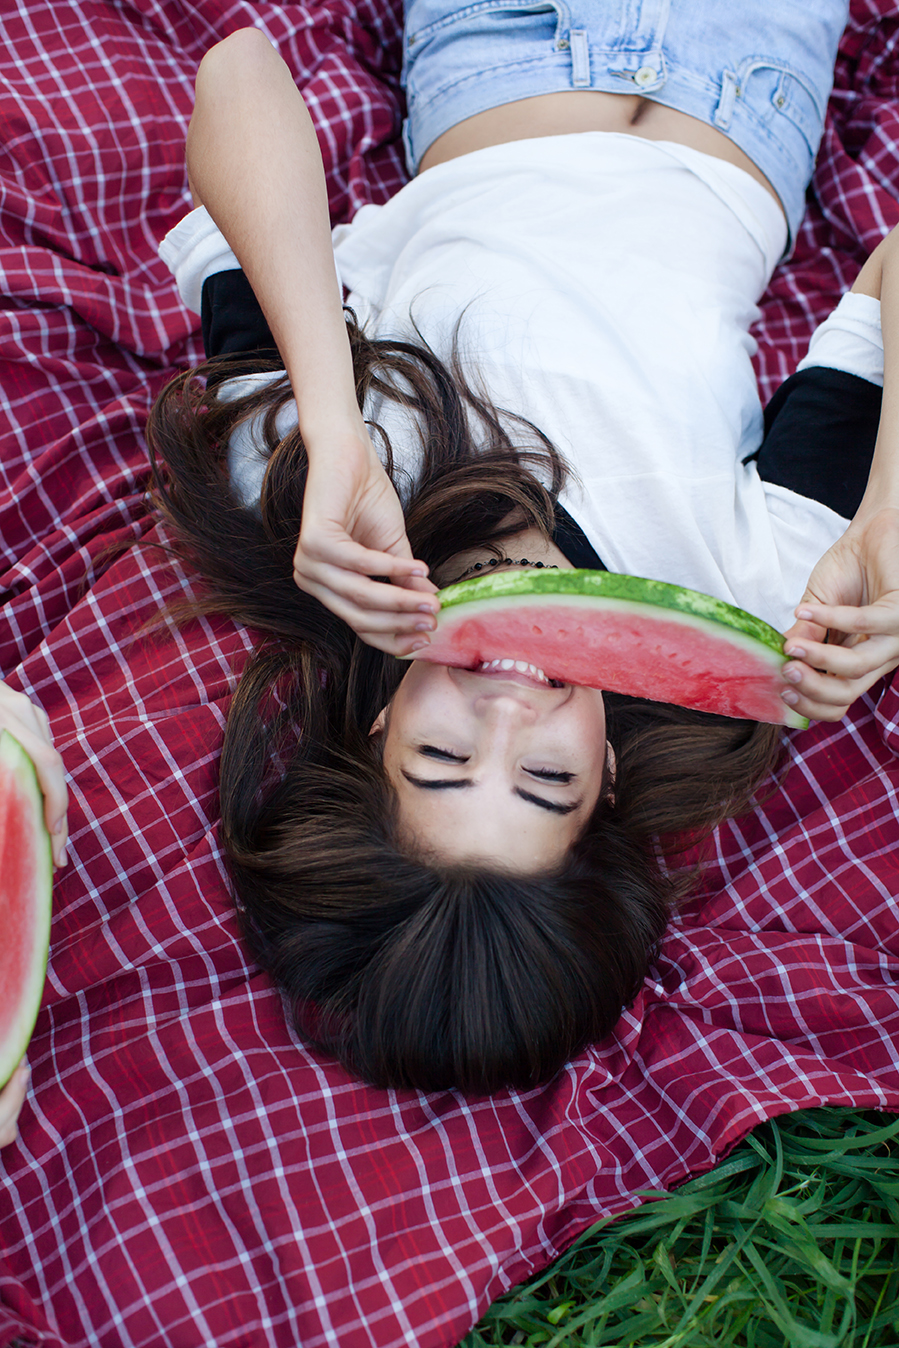 morgan laying and eating watermelon 2 72.jpg